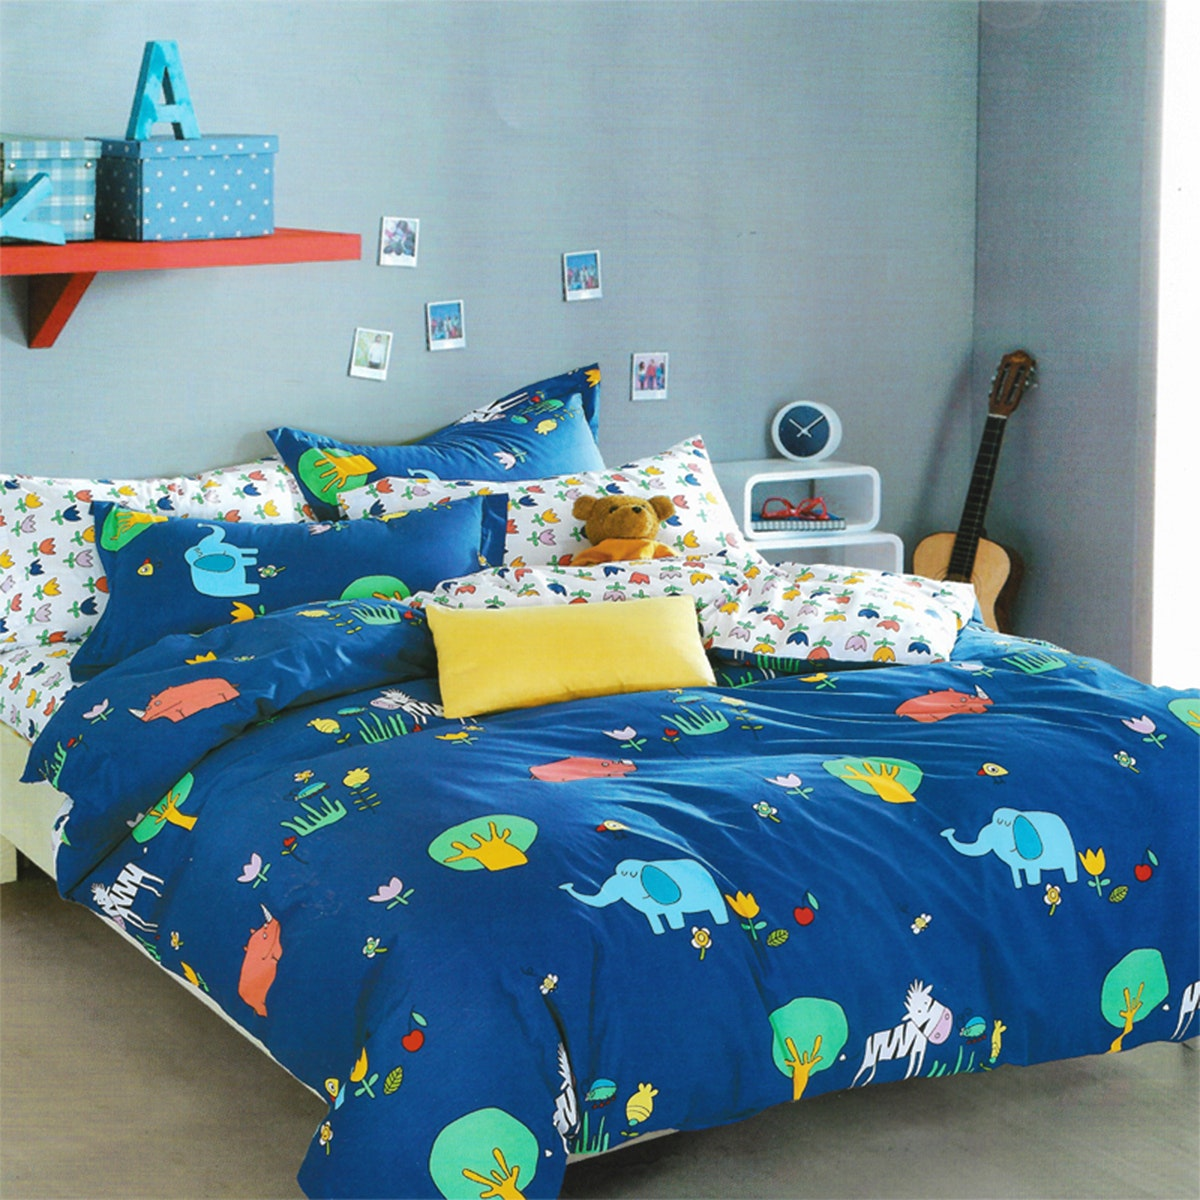 Sleep Buddy Set Sprei dan Bed Cover Baby Elephants Cotton Sateen 200x200x30